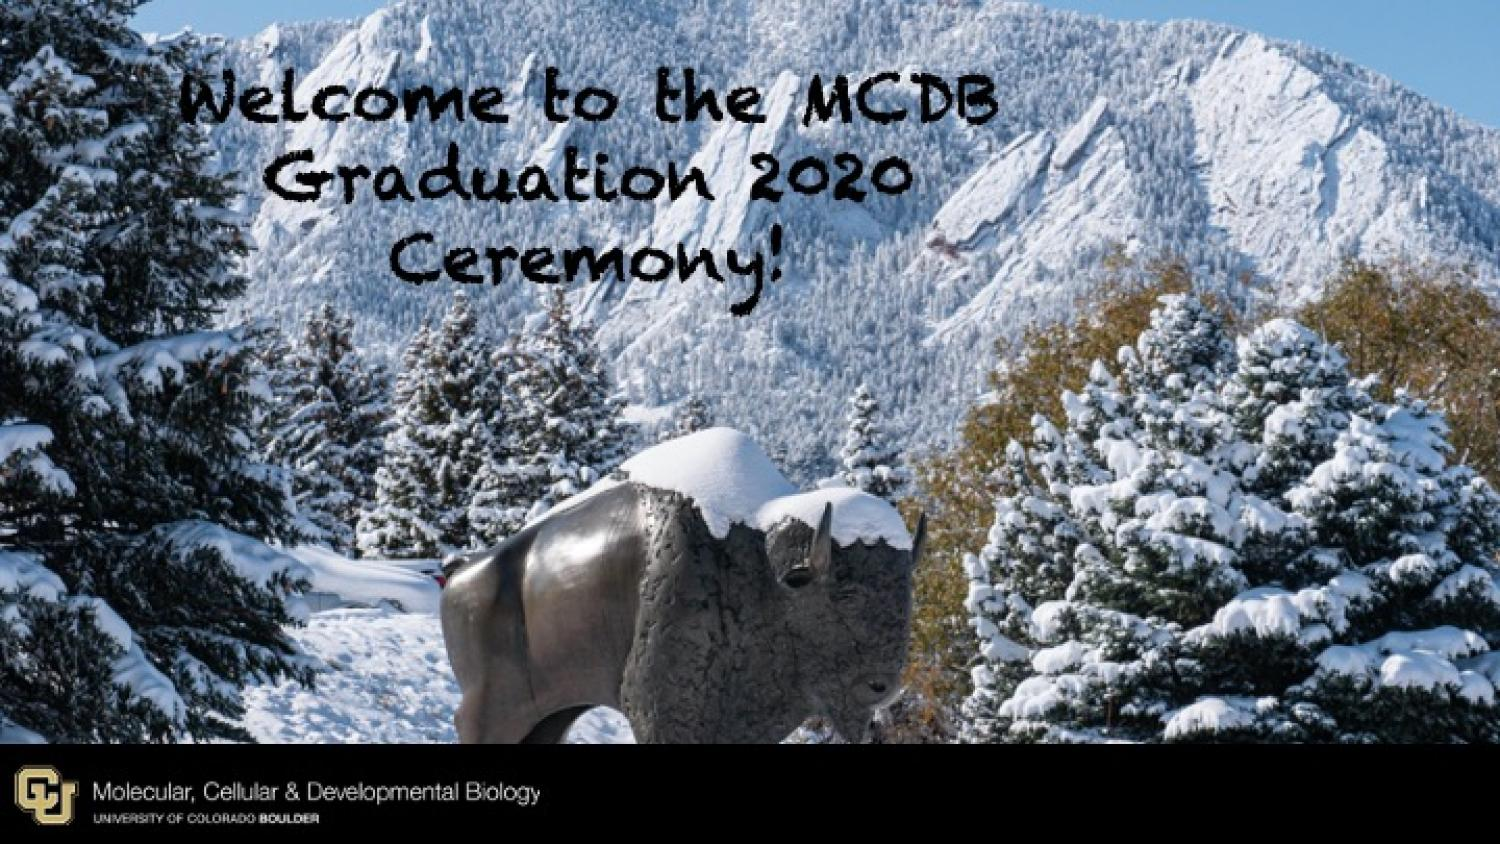 Welcome to the MCDB Graduation 2020 Ceremony!